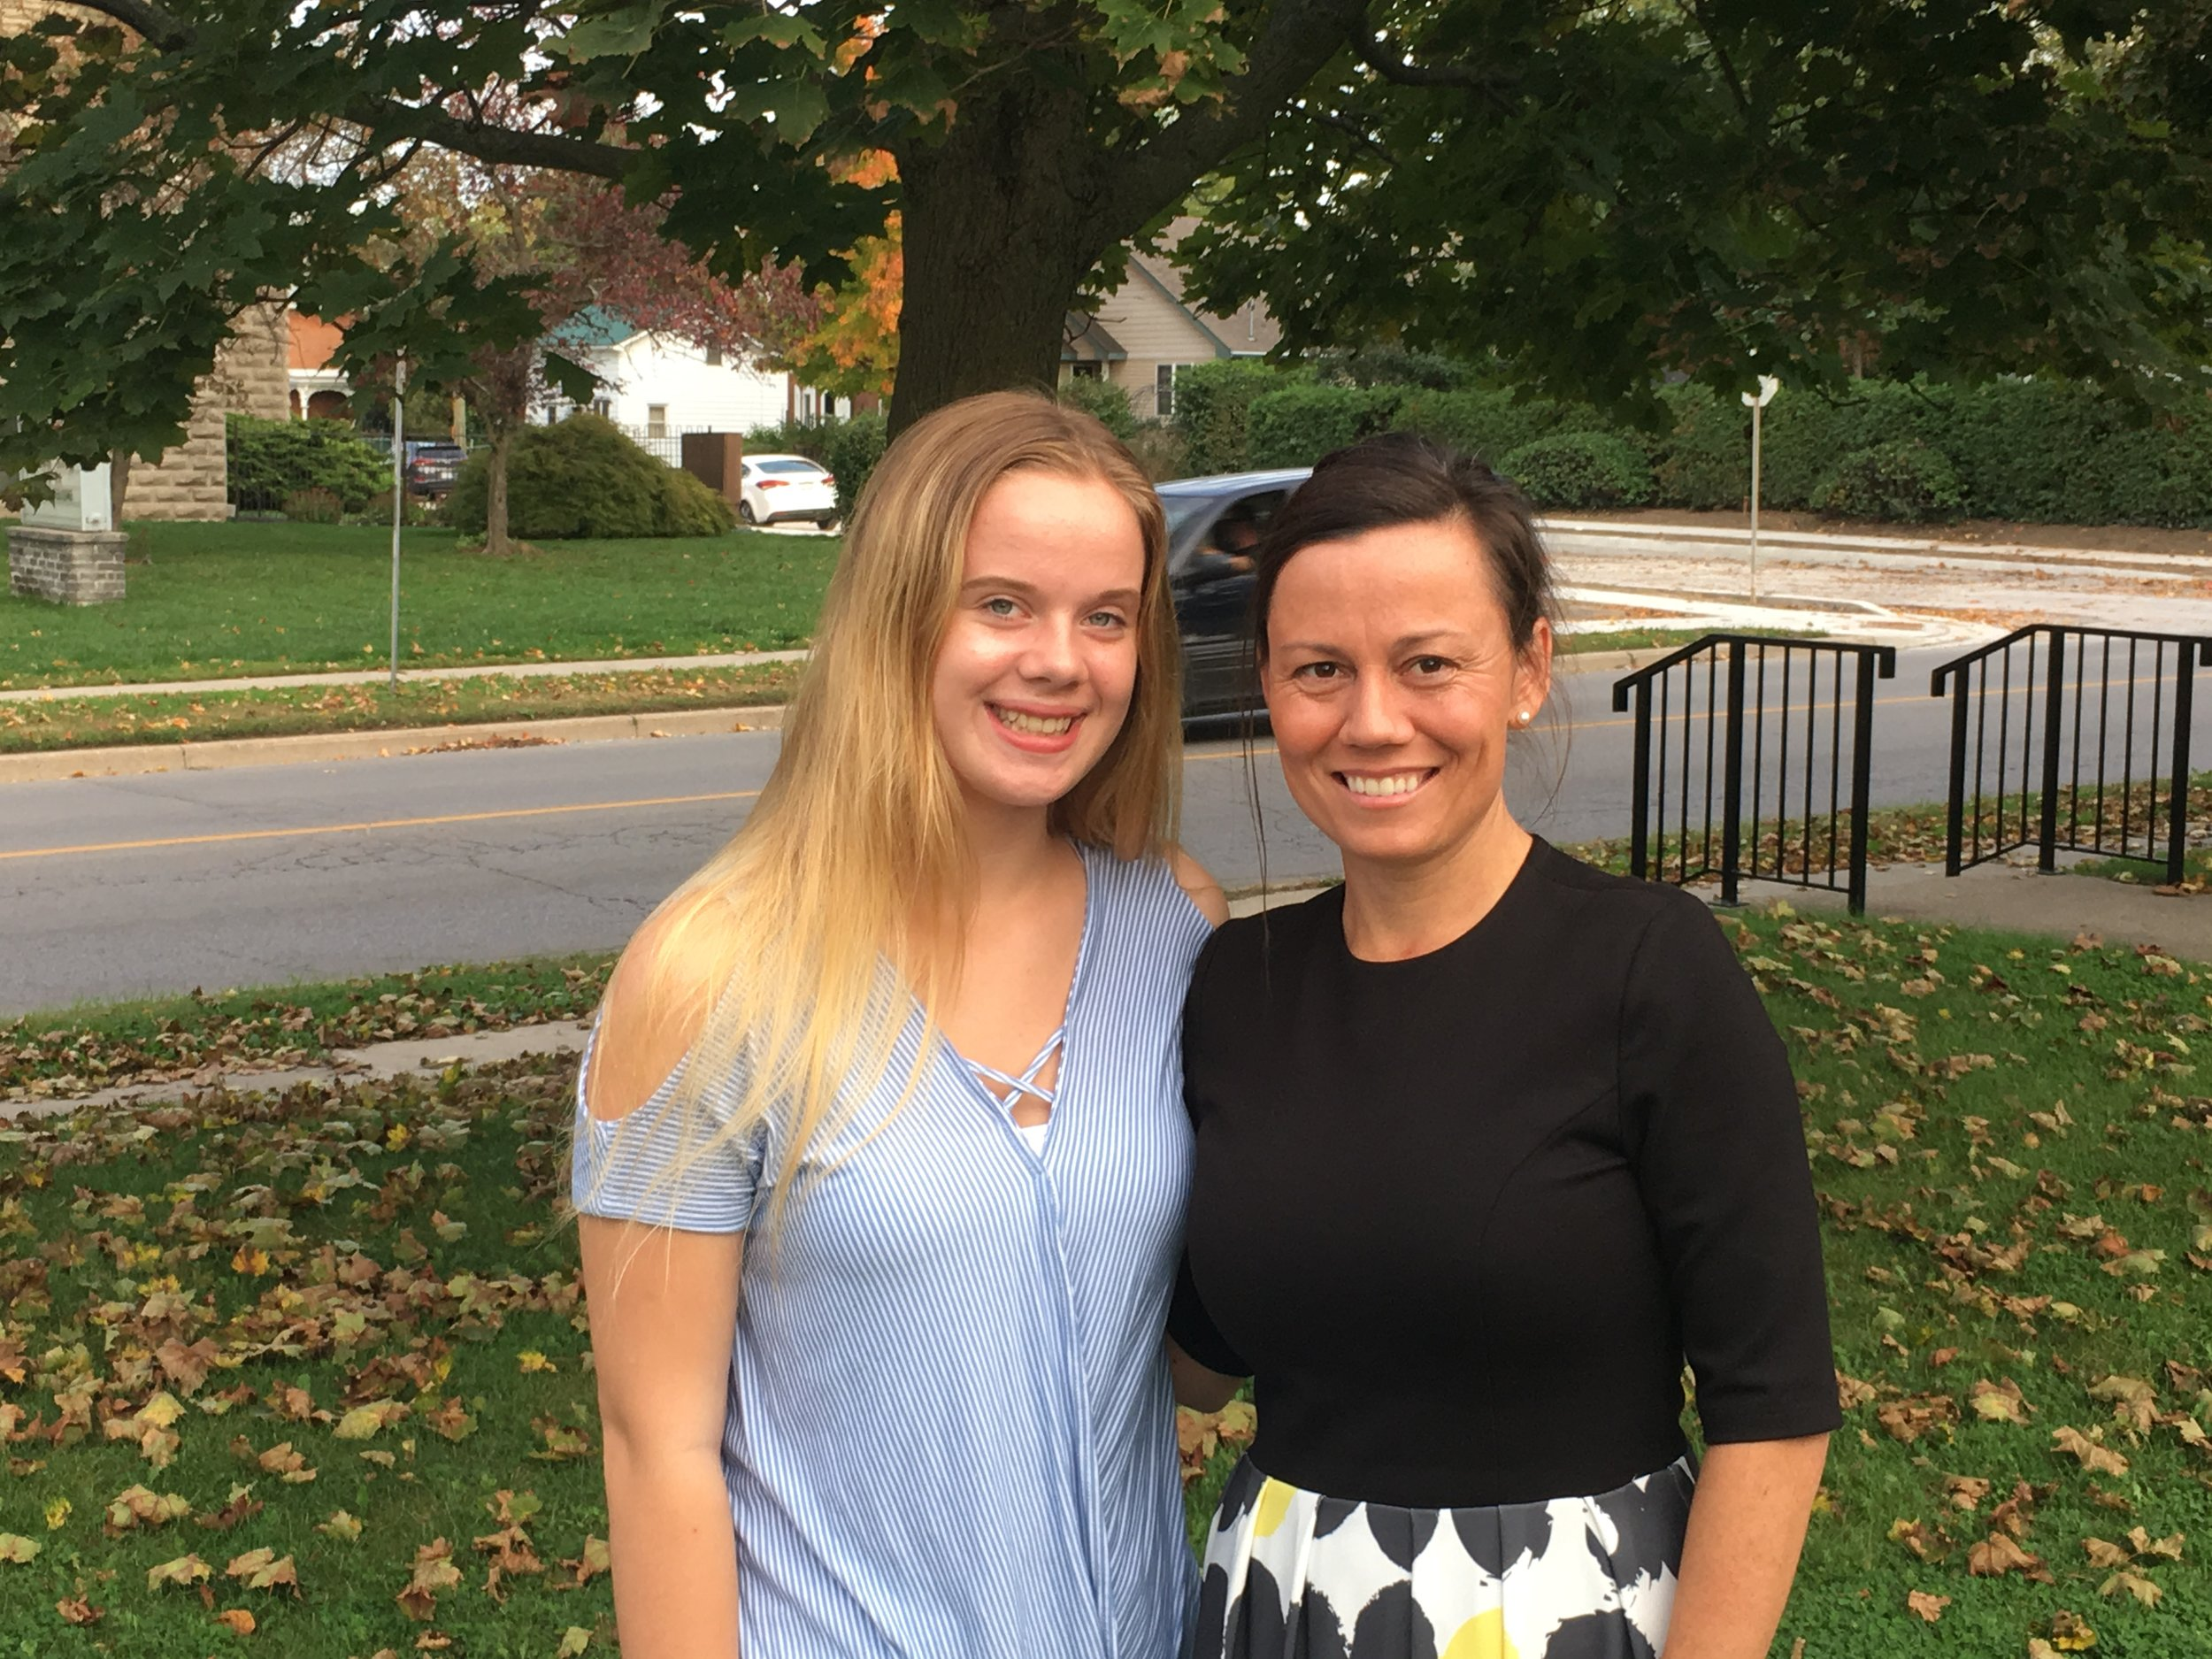 Our young journalist Jenn Klassen recently spoke with Kristal Chopp, one of the candidates for Mayor of Norfolk County.